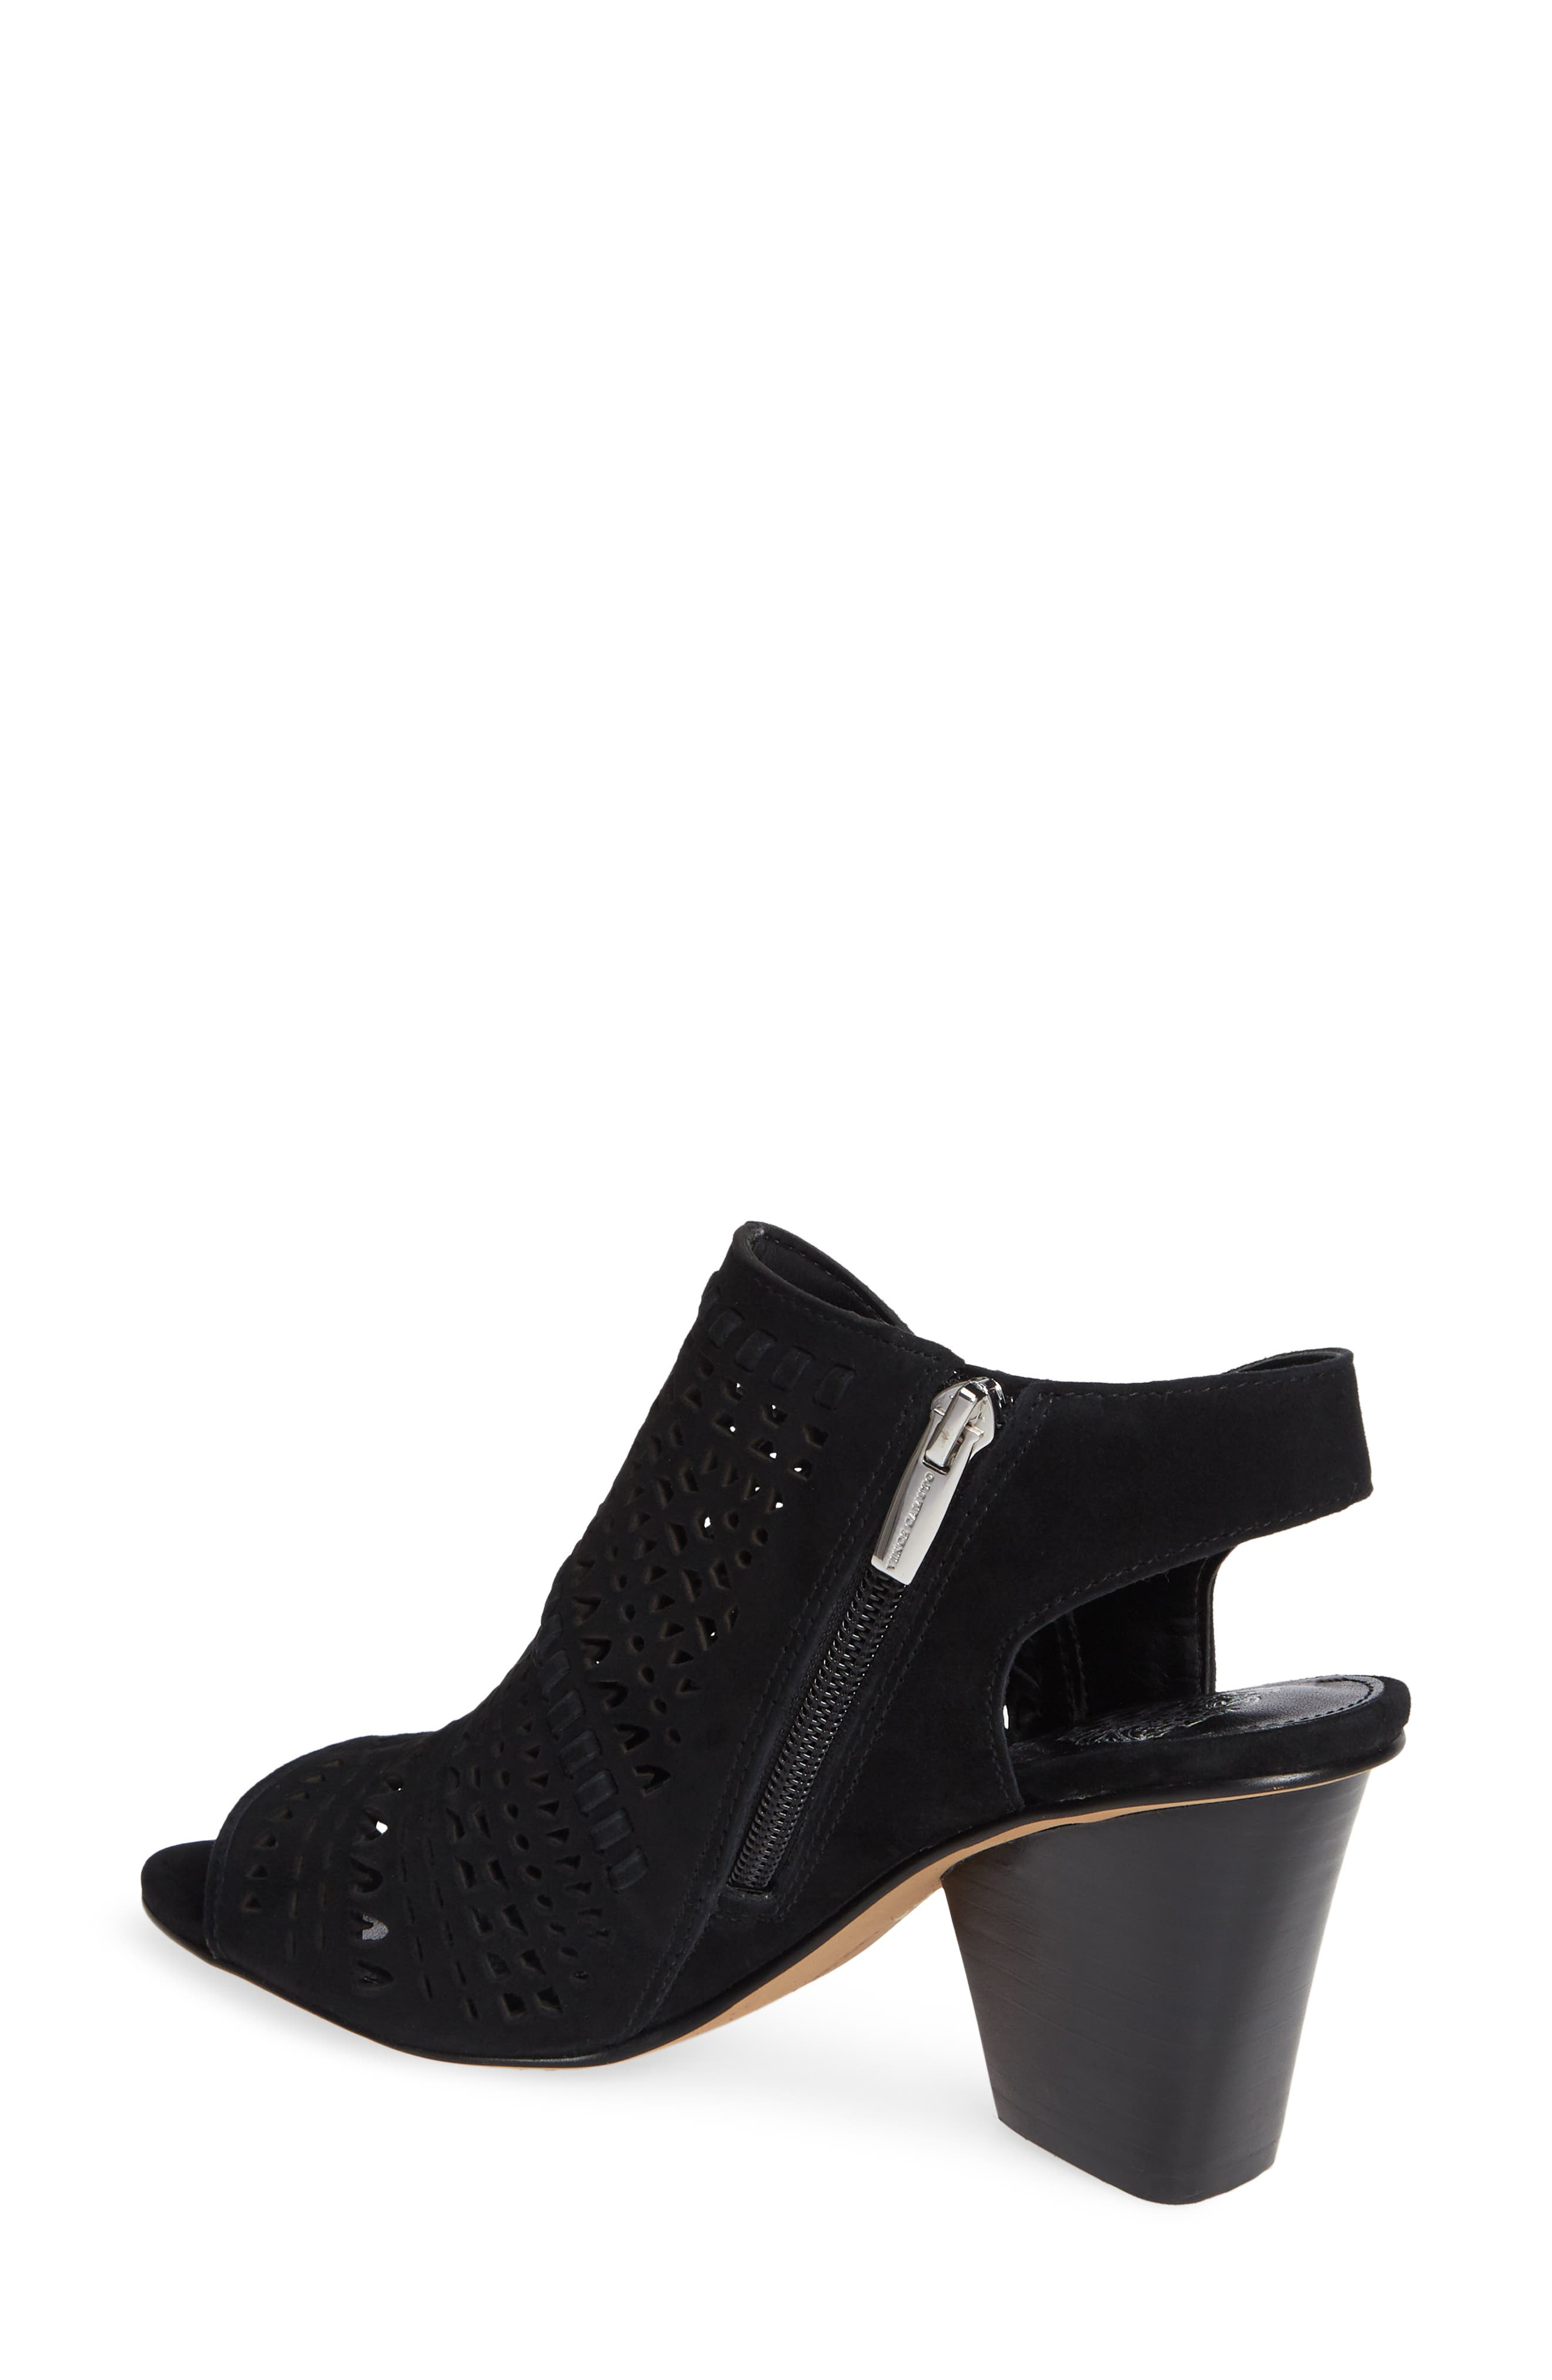 VINCE CAMUTO, Derechie Perforated Shield Sandal, Alternate thumbnail 2, color, BLACK SUEDE